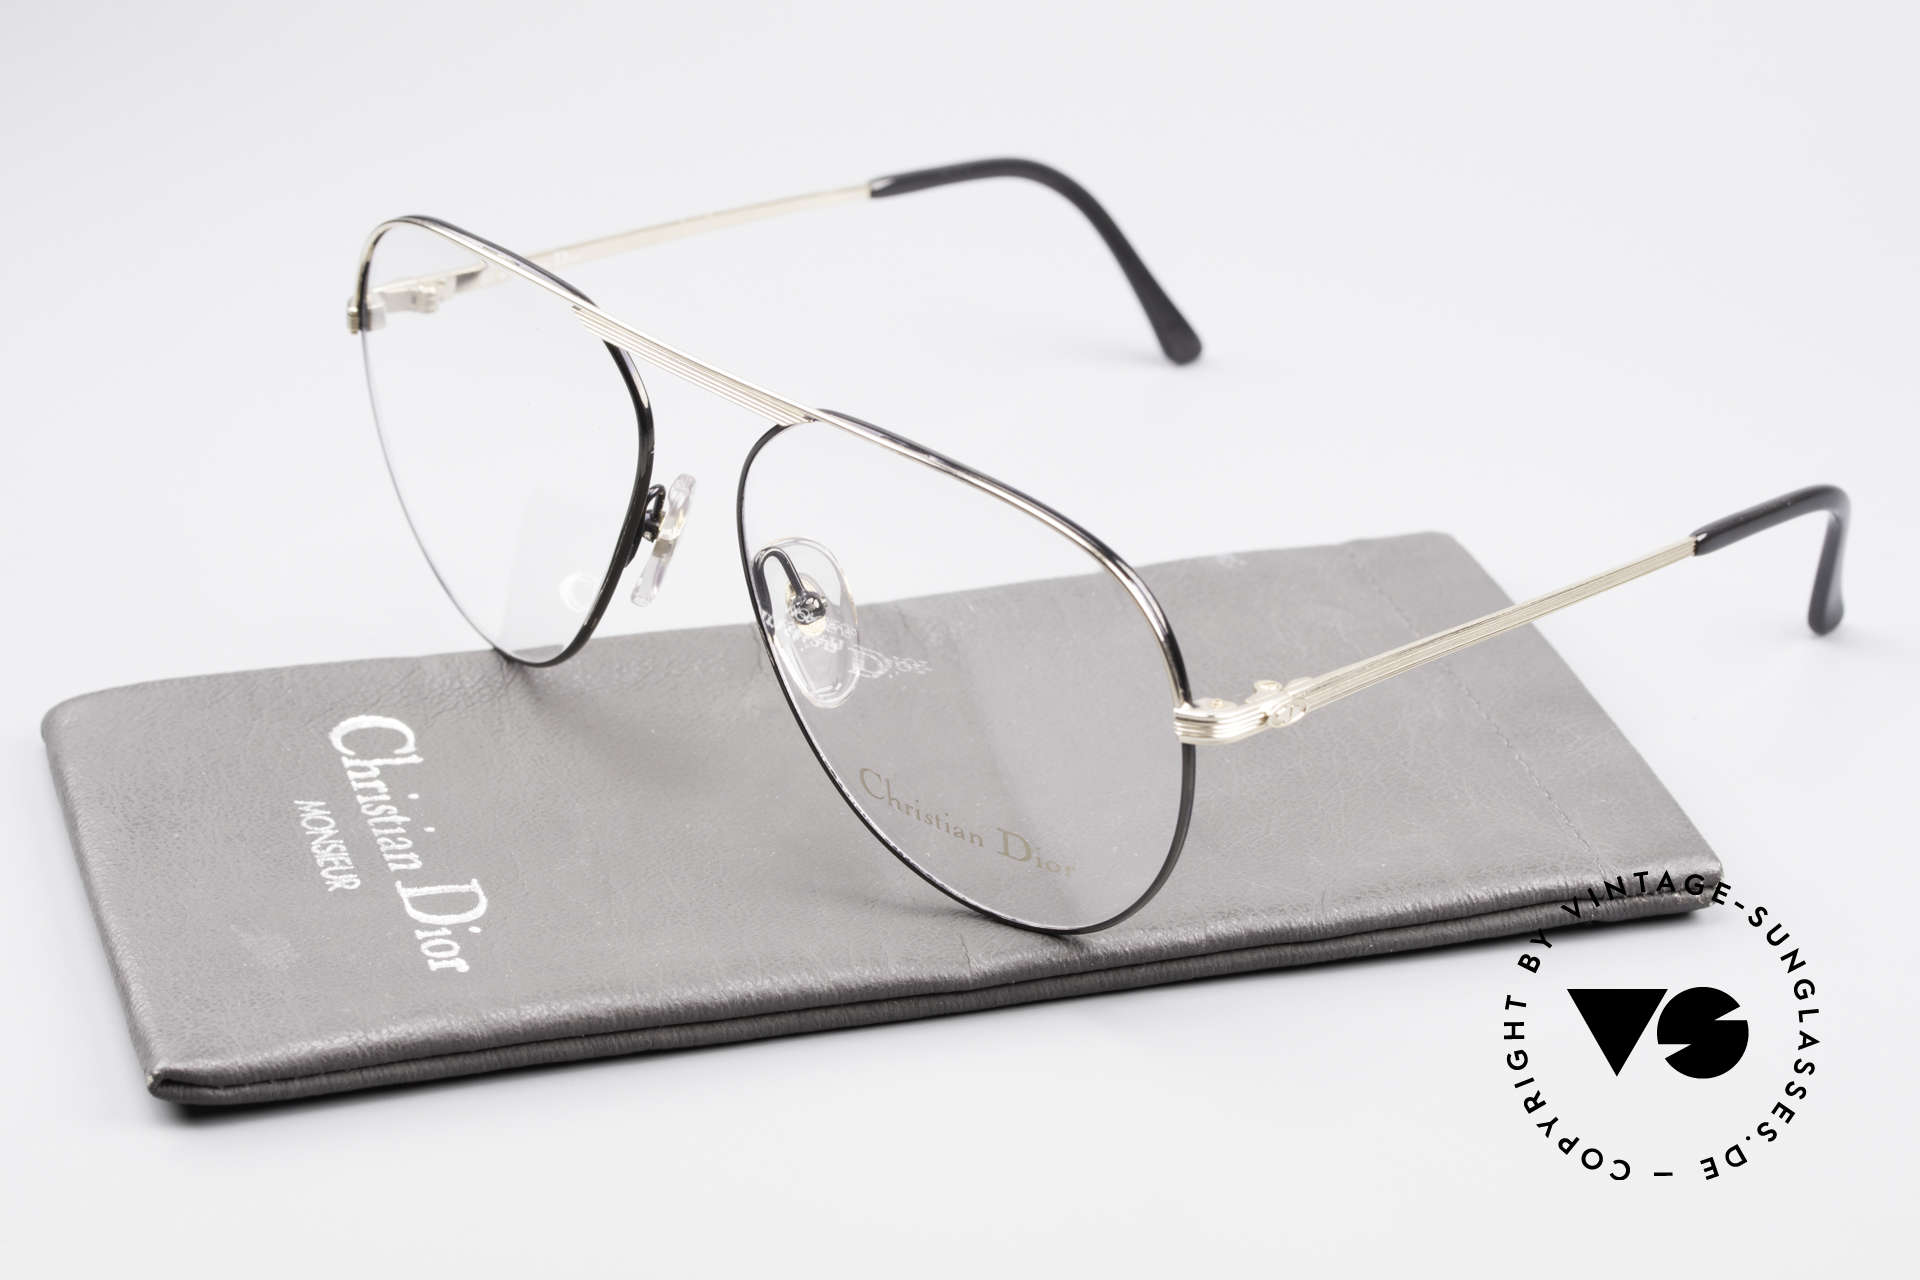 Christian Dior 2536 Vintage Aviator Glasses Men, the metal frame is made for lenses of any kind, Made for Men